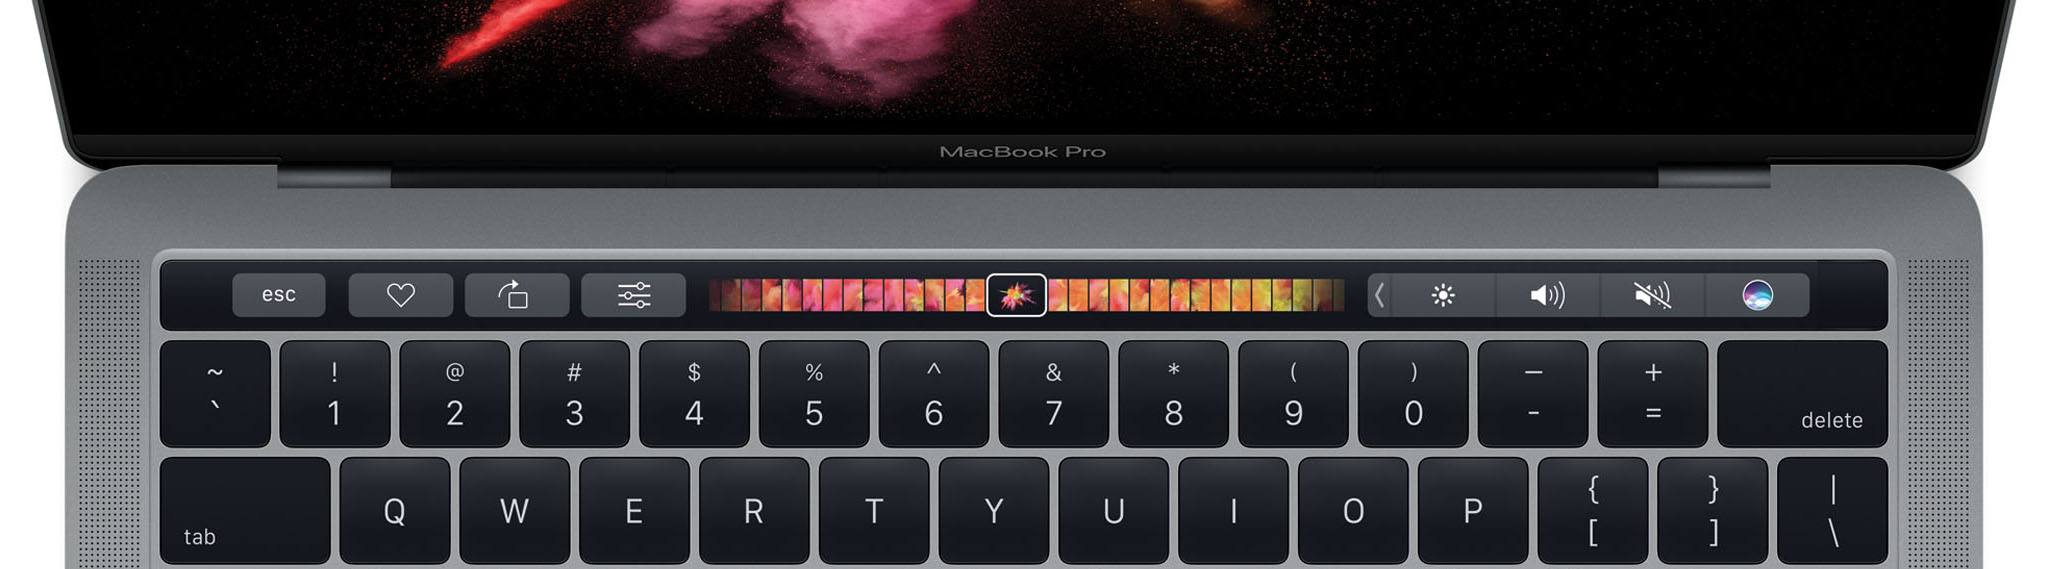 MacBook Pro 2021: Significant innovations expected - off ...